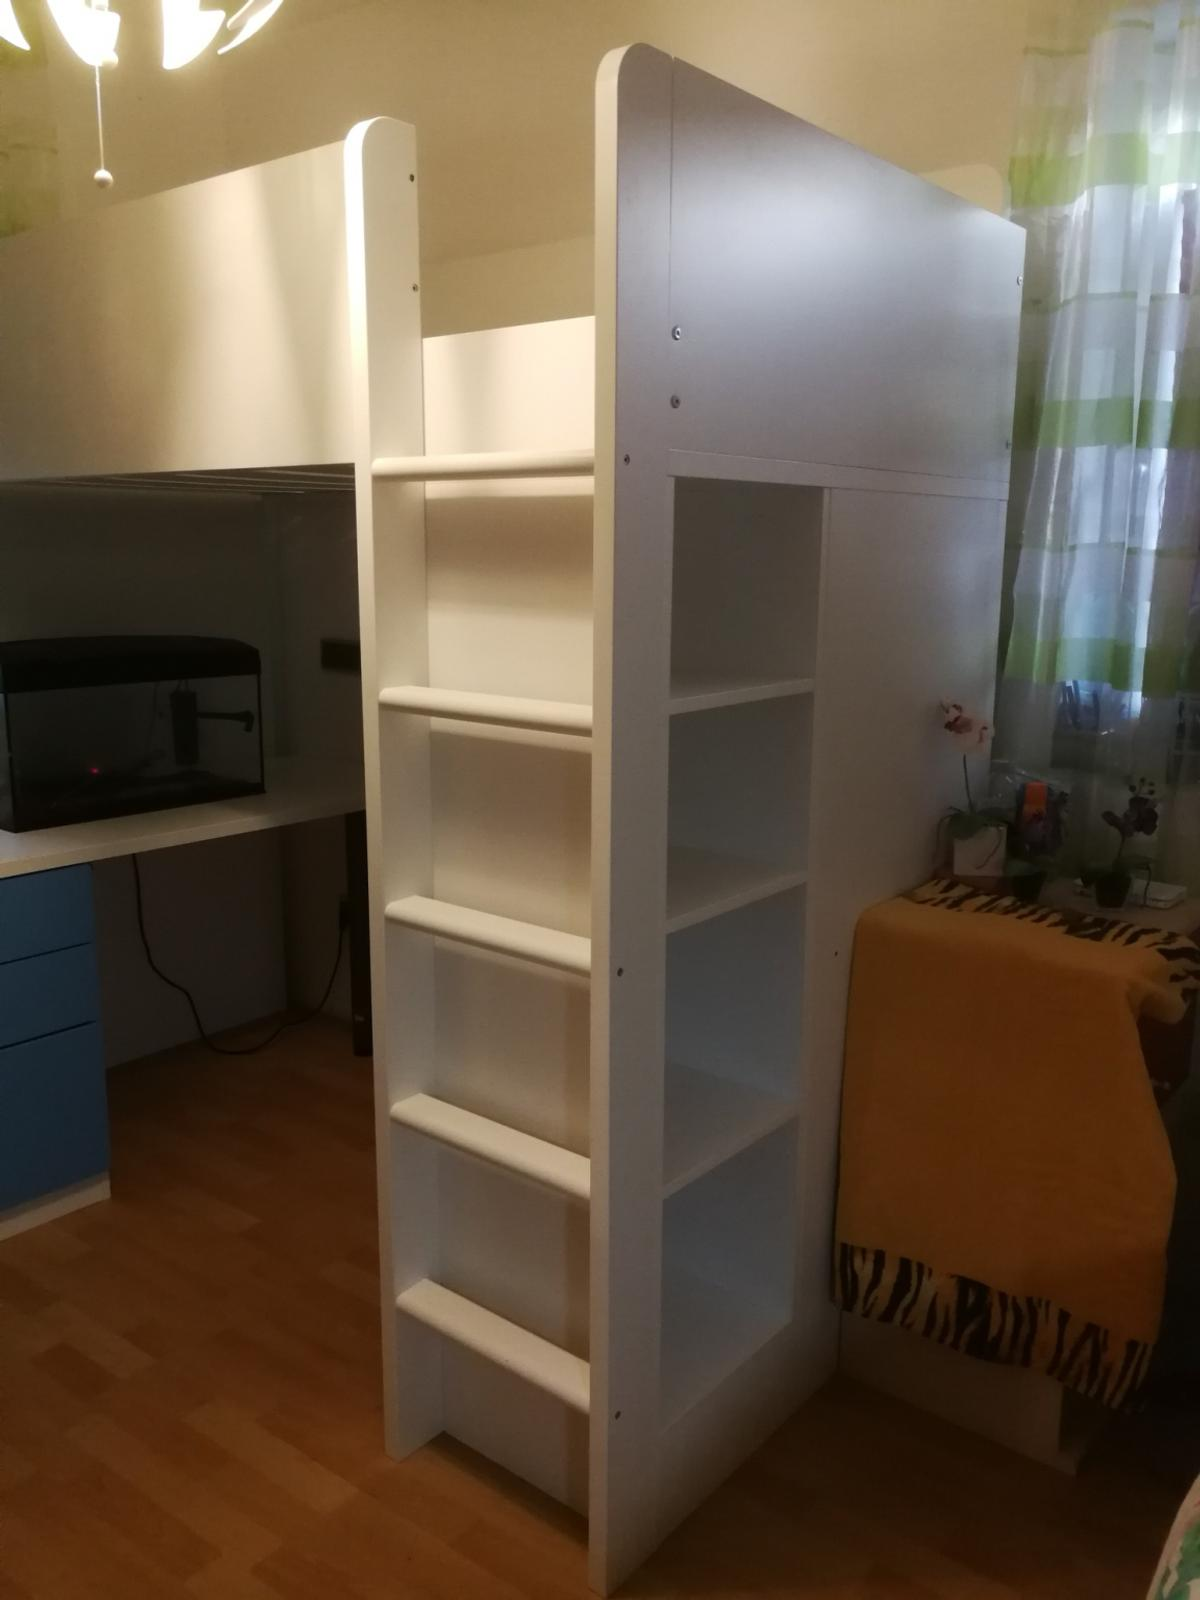 Ikea Jugendzimmer Stuva In 6344 Walchsee For 180 00 For Sale Shpock